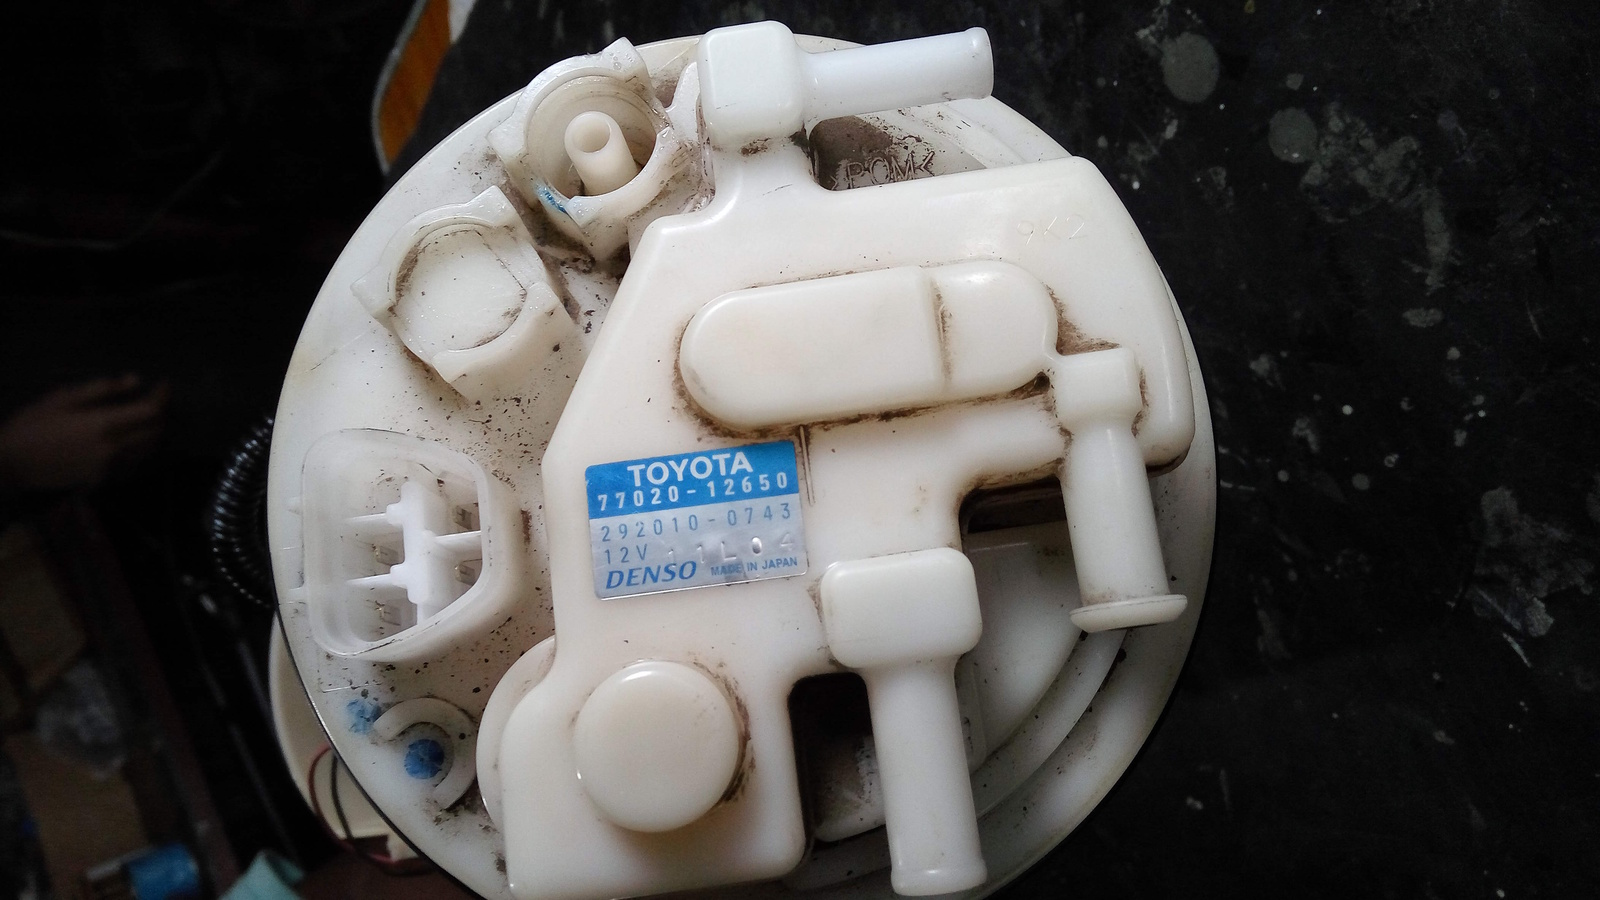 Toyota Corolla Questions Axio 2009 Engine Starting Wiring Diagram Even I Open The Pressure Regulator And Disassemble To Check For Any Blockage But Not Found Car Millage Is Only 24040 Km Battery Seems Ok